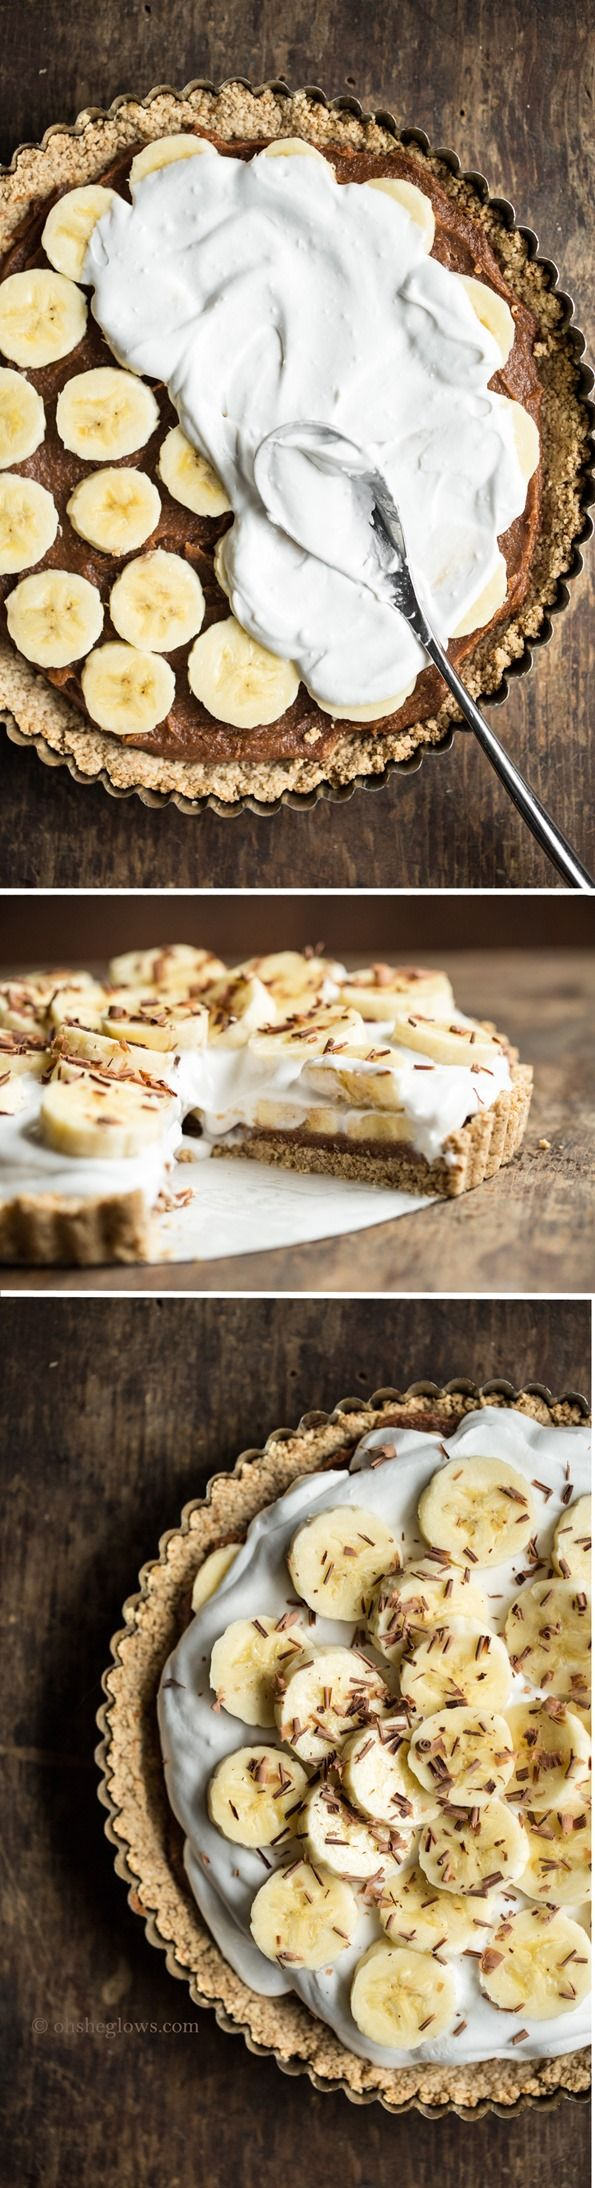 Banoffee Pie from My New Roots by ohsheglows: Vegan, gluten-free, refined sugar-free, soy-free. #Pie #Banoffee_Pie #Vegan #GF